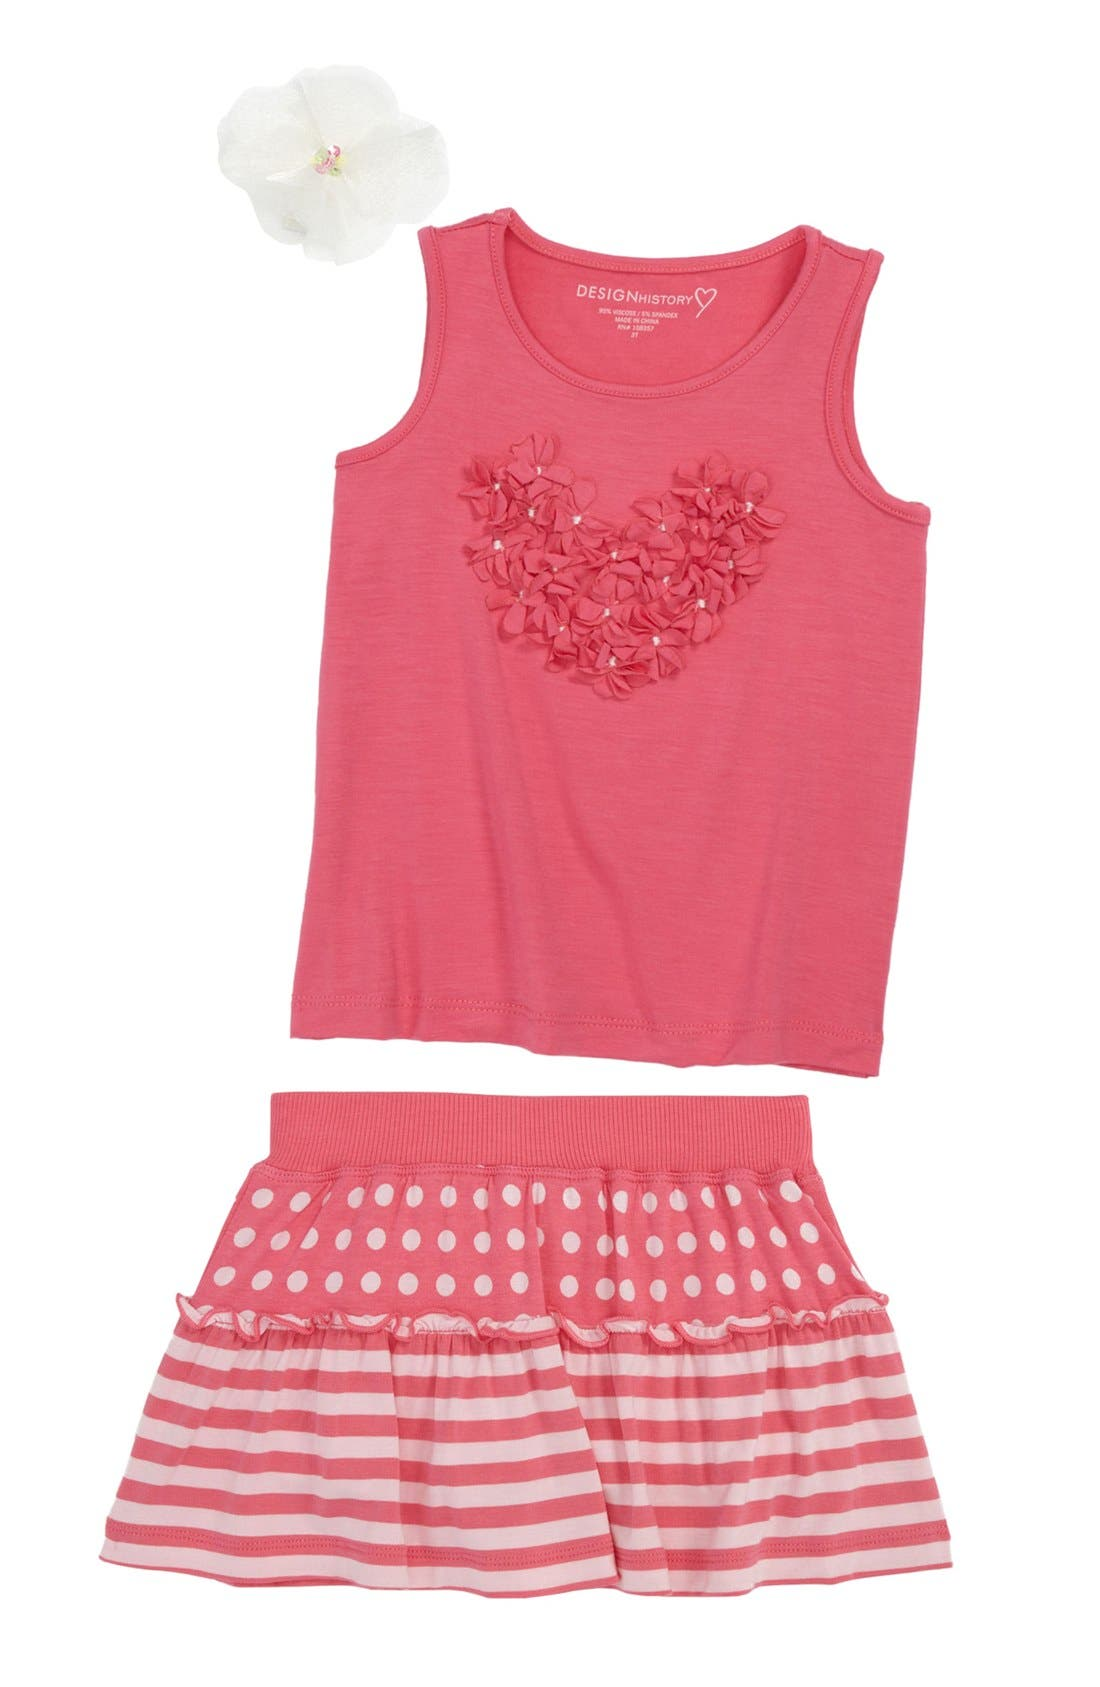 Alternate Image 1 Selected - Design History Tank Top & Skort & PLH Bows & Laces Hair Clip (Toddler)